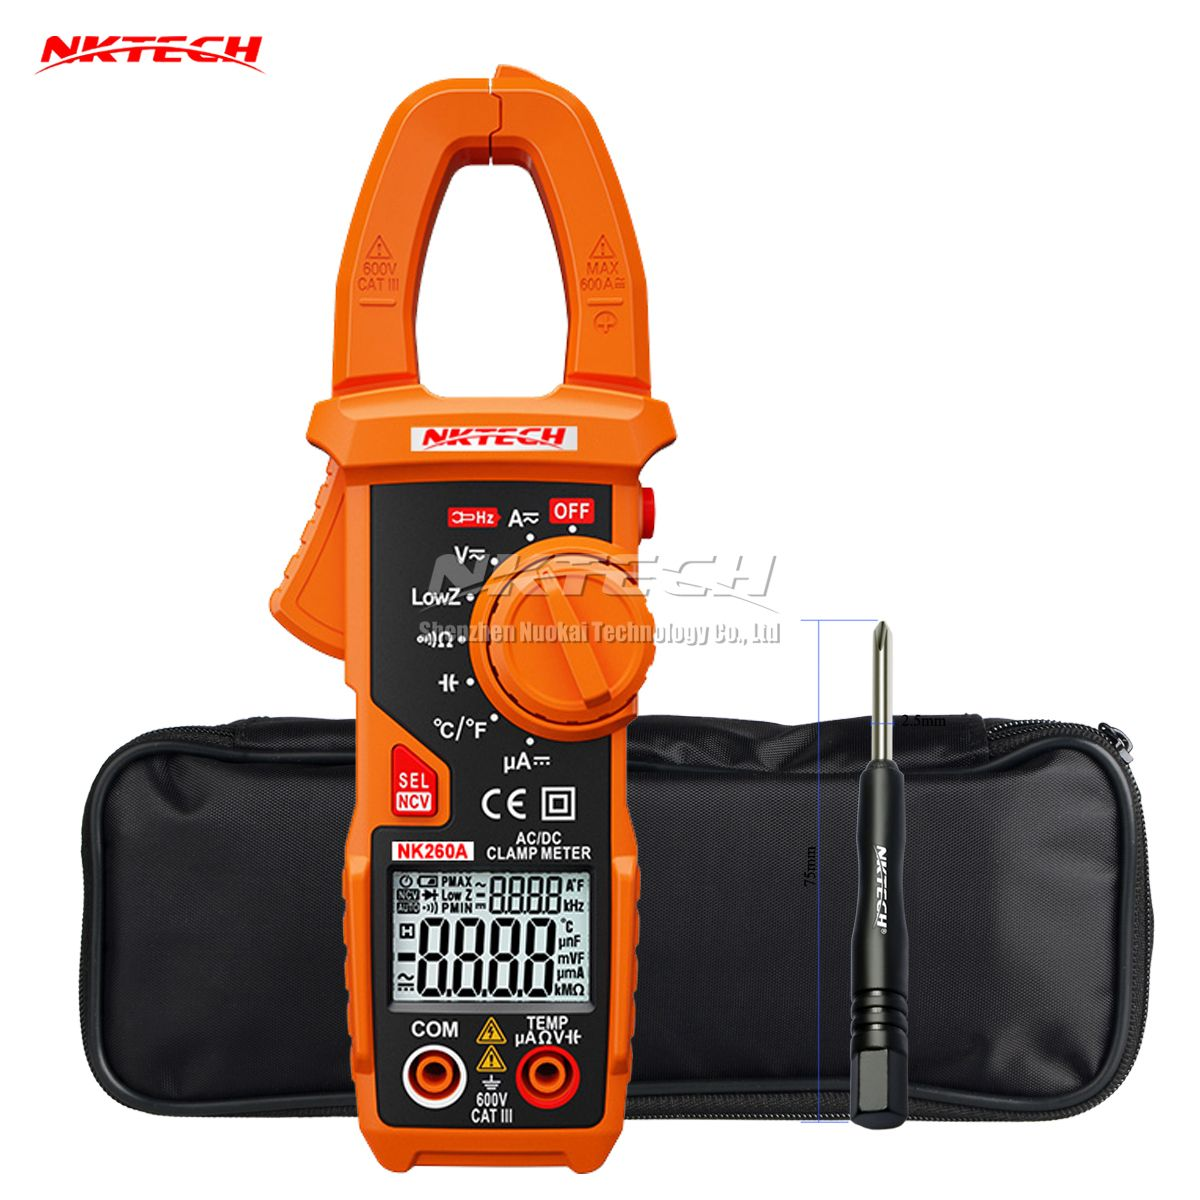 NKTECH NK260A Digital Clamp Meter Temperature AC DC Voltage Current Resistance Capacitance Frequency Auto Recognize V/Ohm/A Test